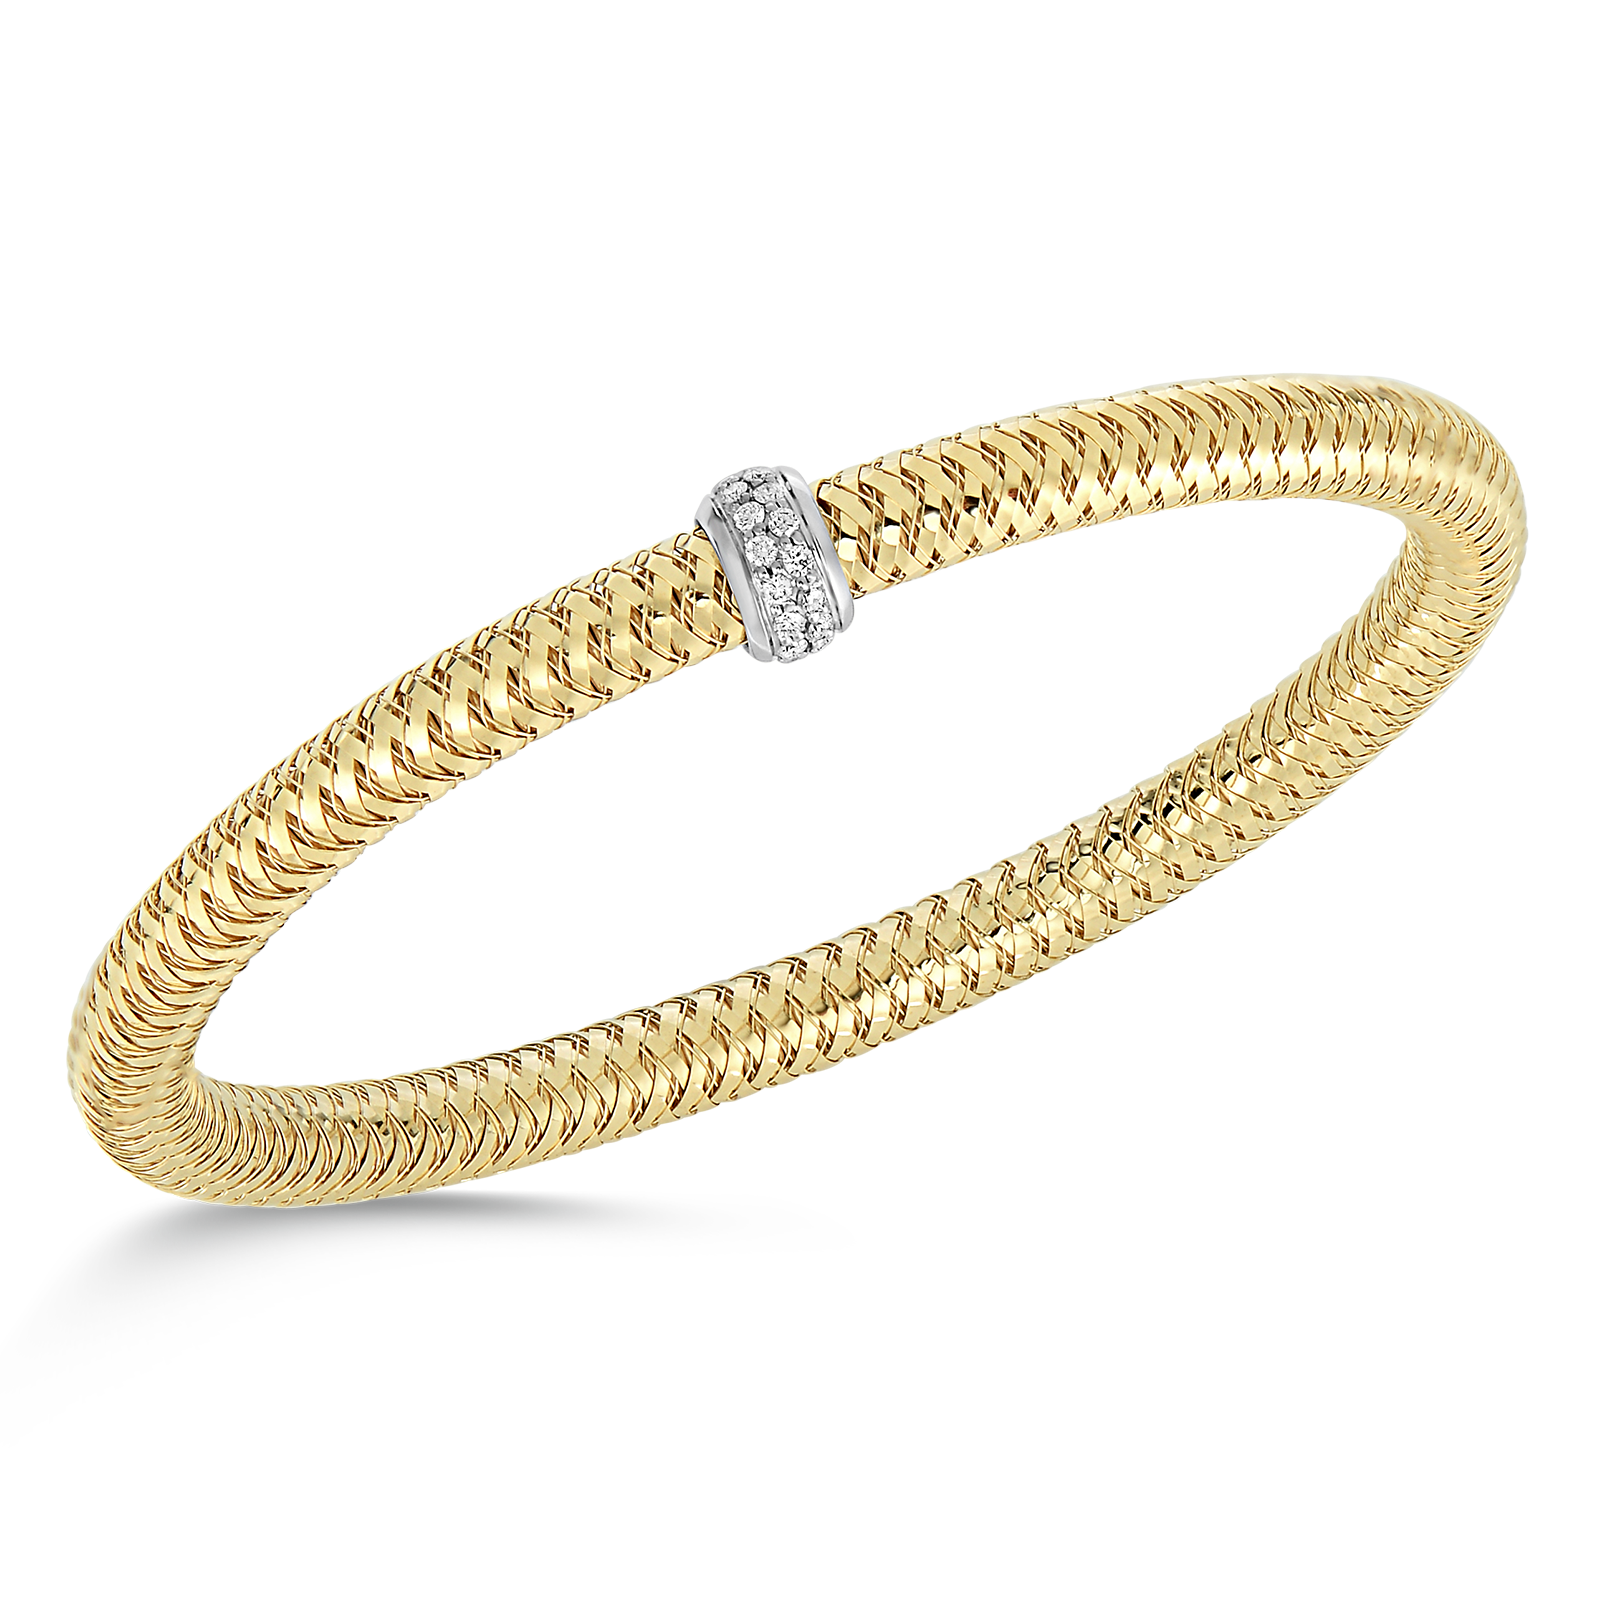 18K Yellow Gold Flexible Bangle With Diamonds